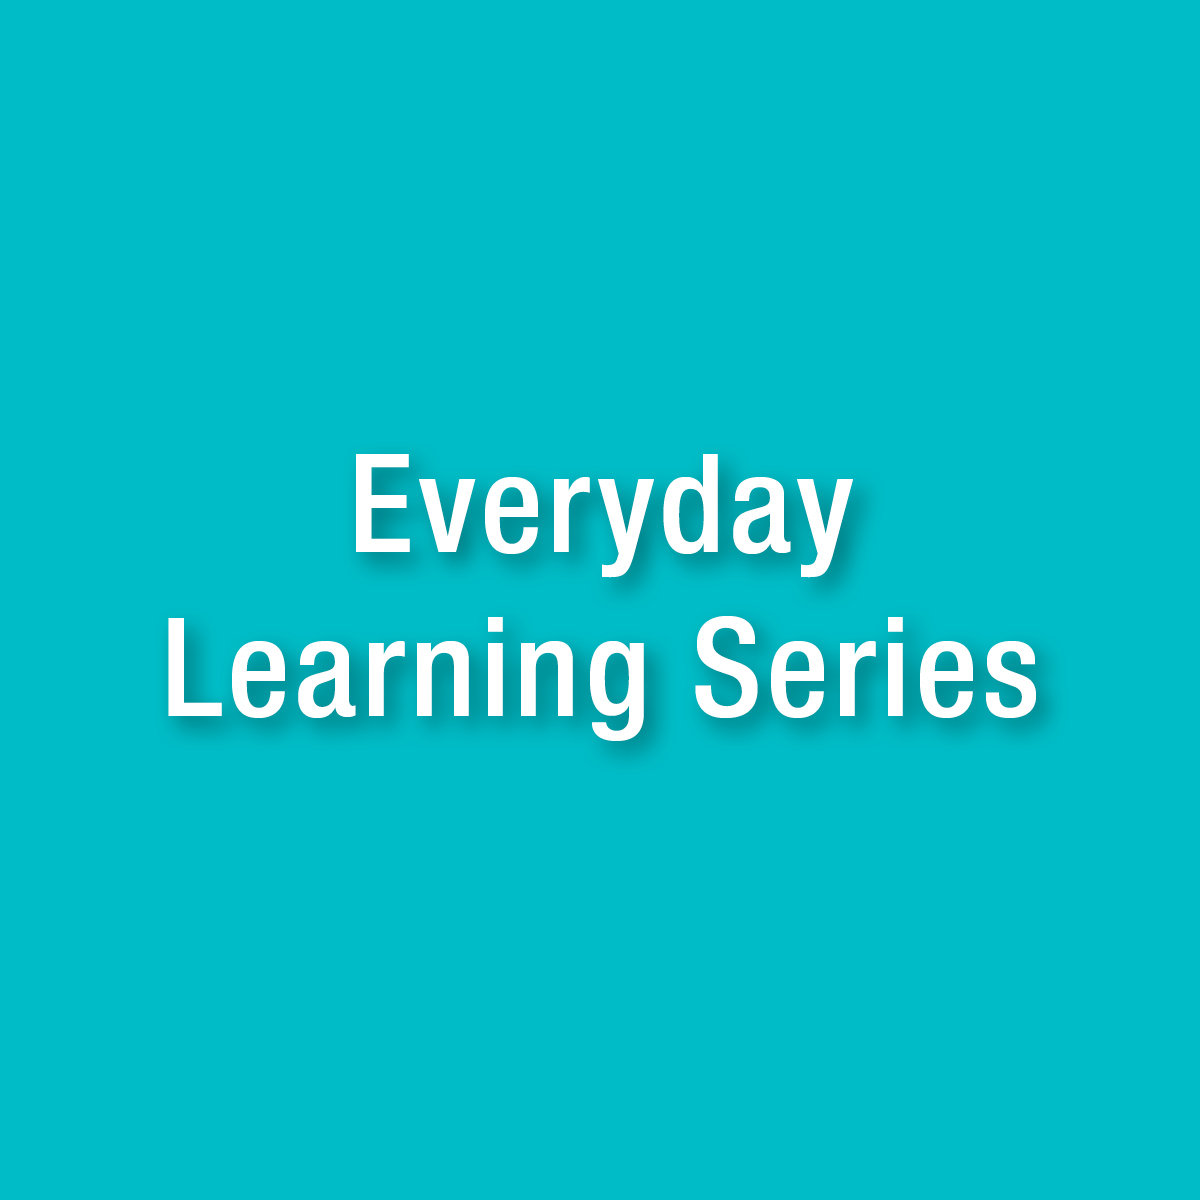 Everyday Learning Series